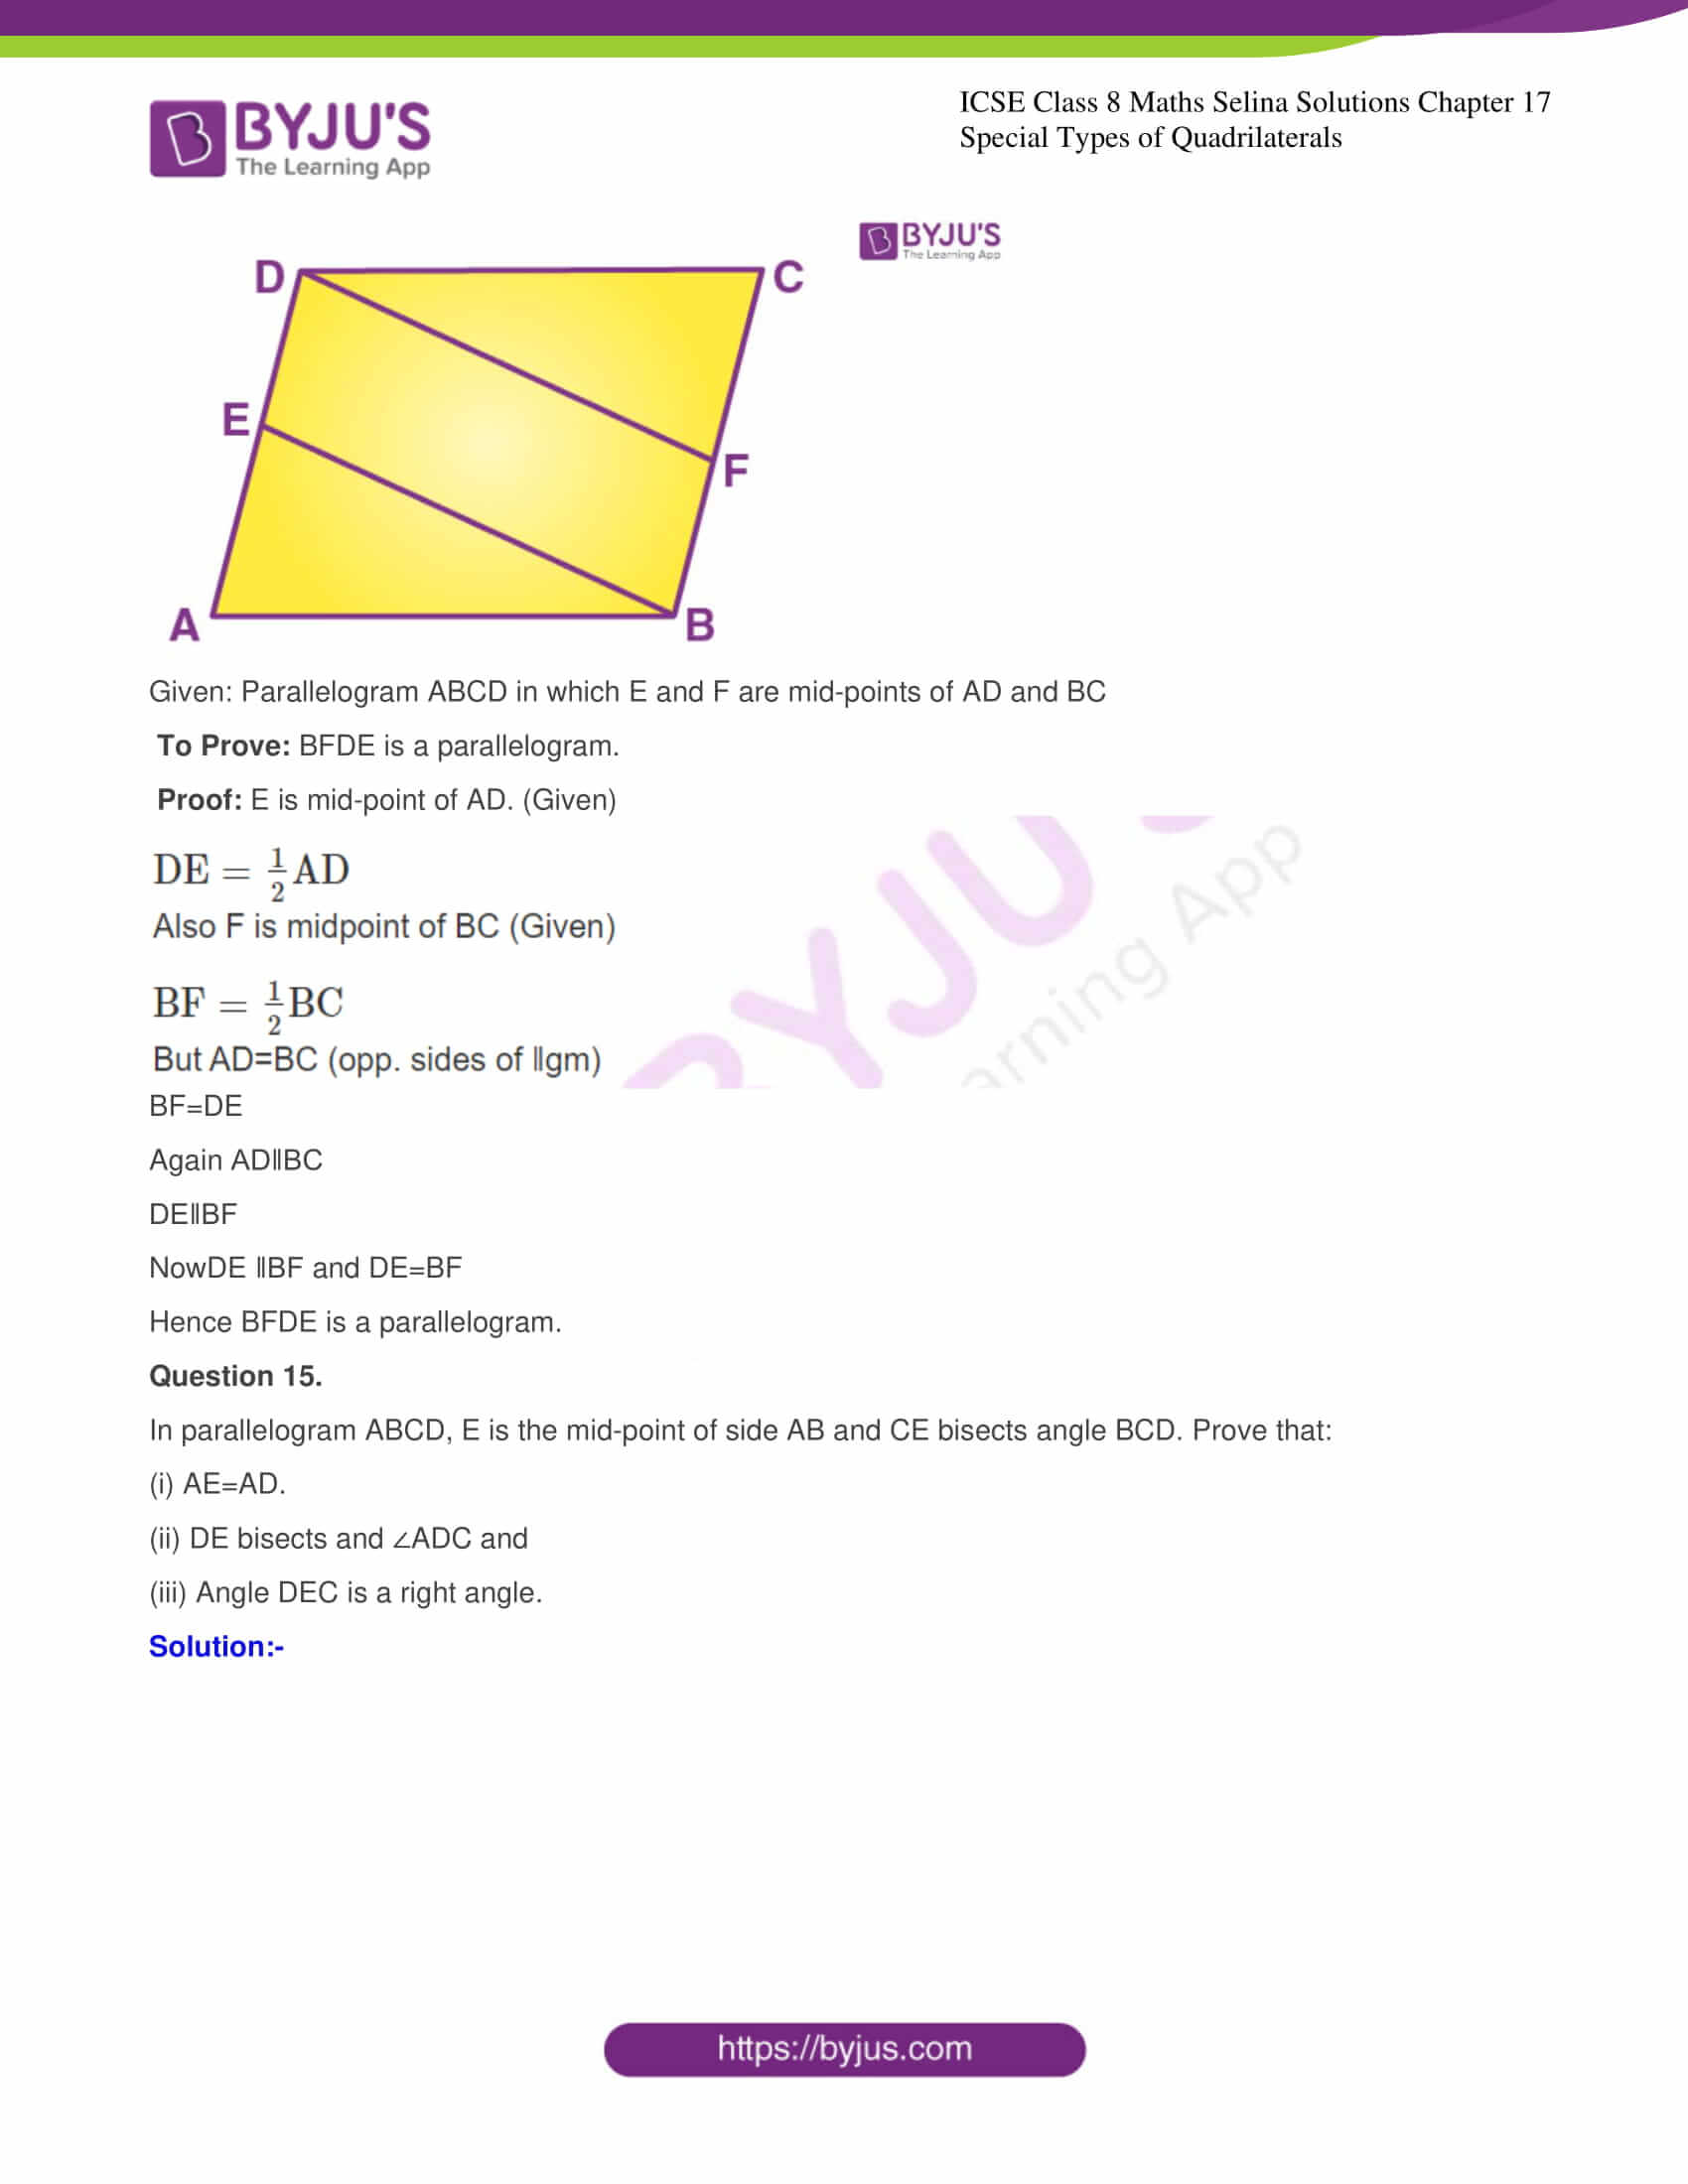 icse class 8 maths may3 selina solutions chapter 17 special types of quadrilaterals 13